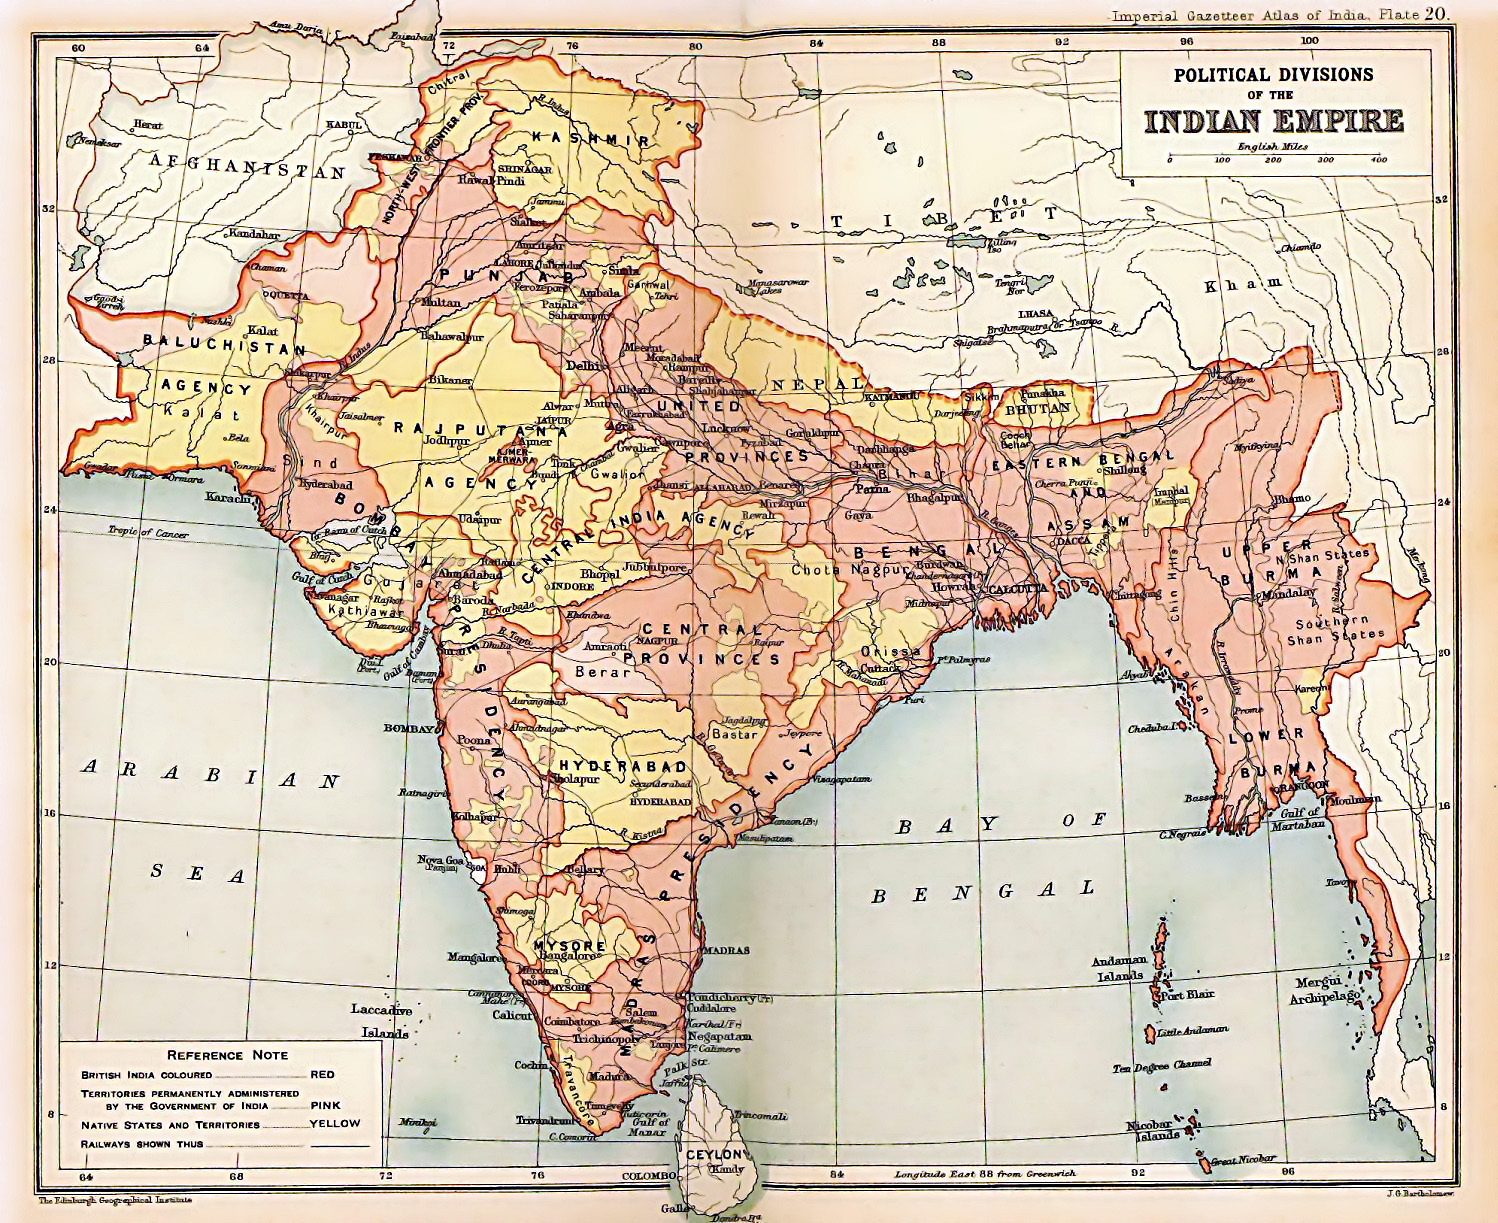 British Indian Empire Imperial Gazetteer Of India